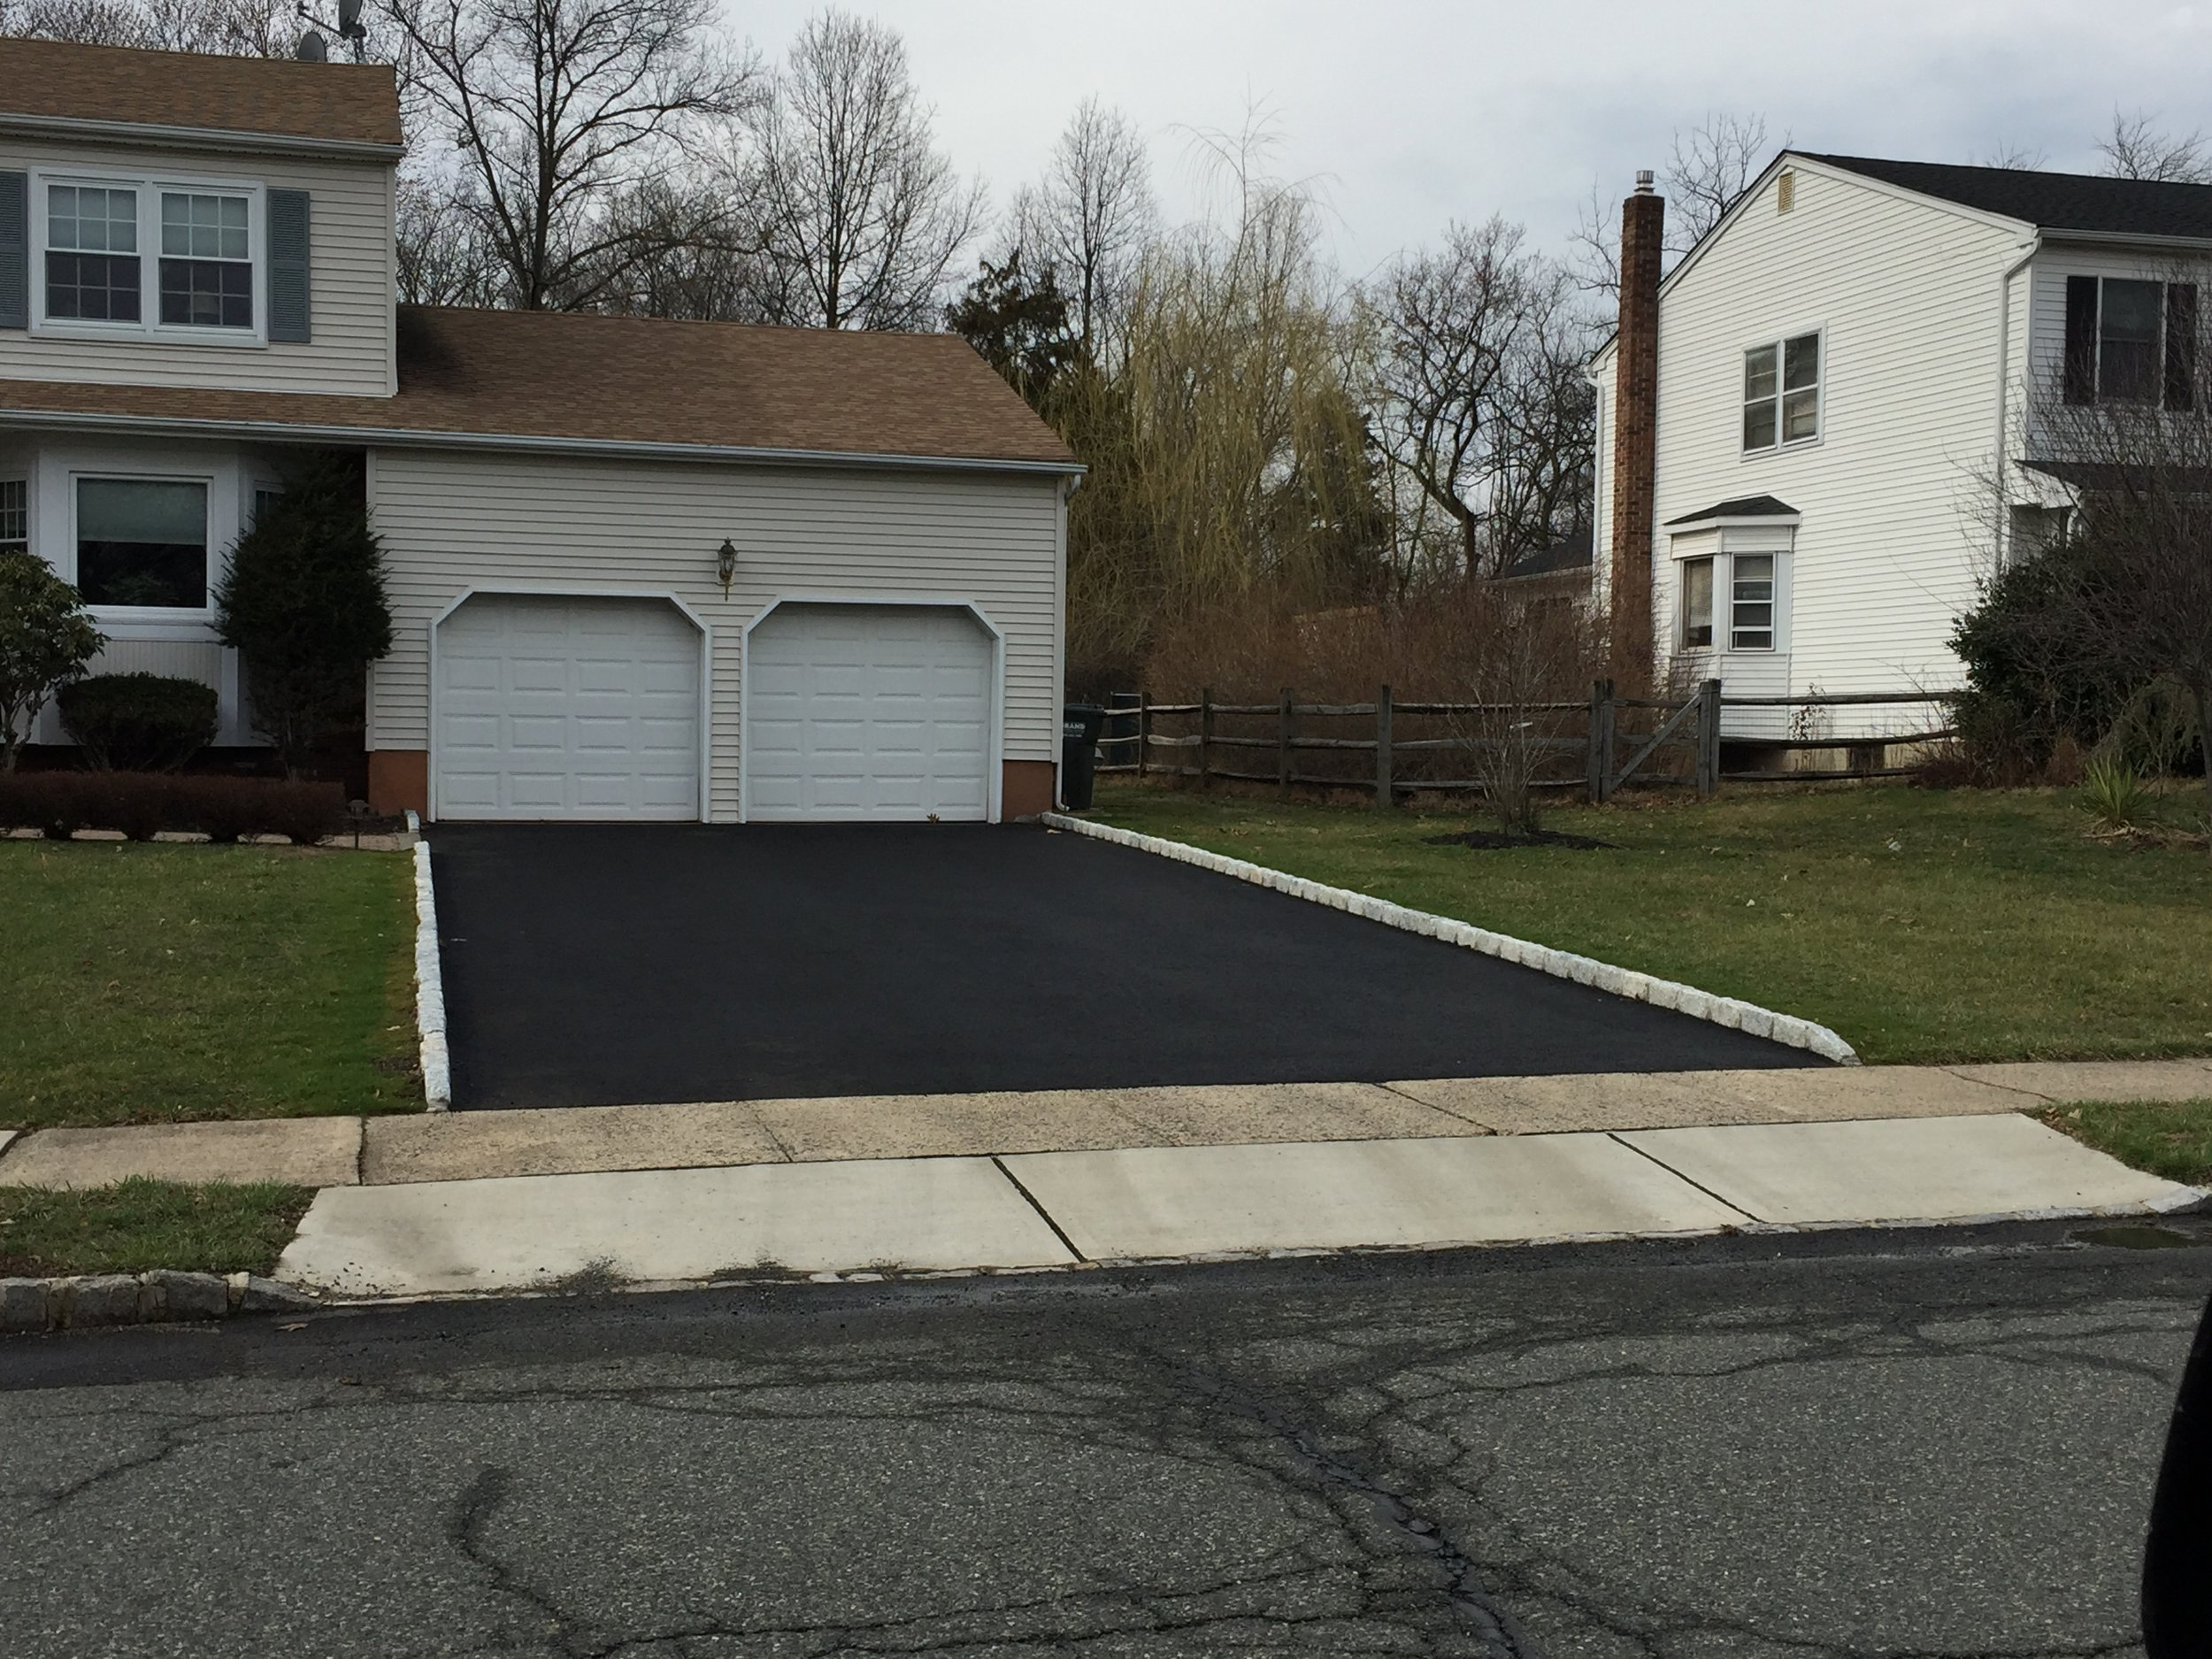 Curbing and Paving Double Car Asphalt Driveway in Hillsborough, NJ